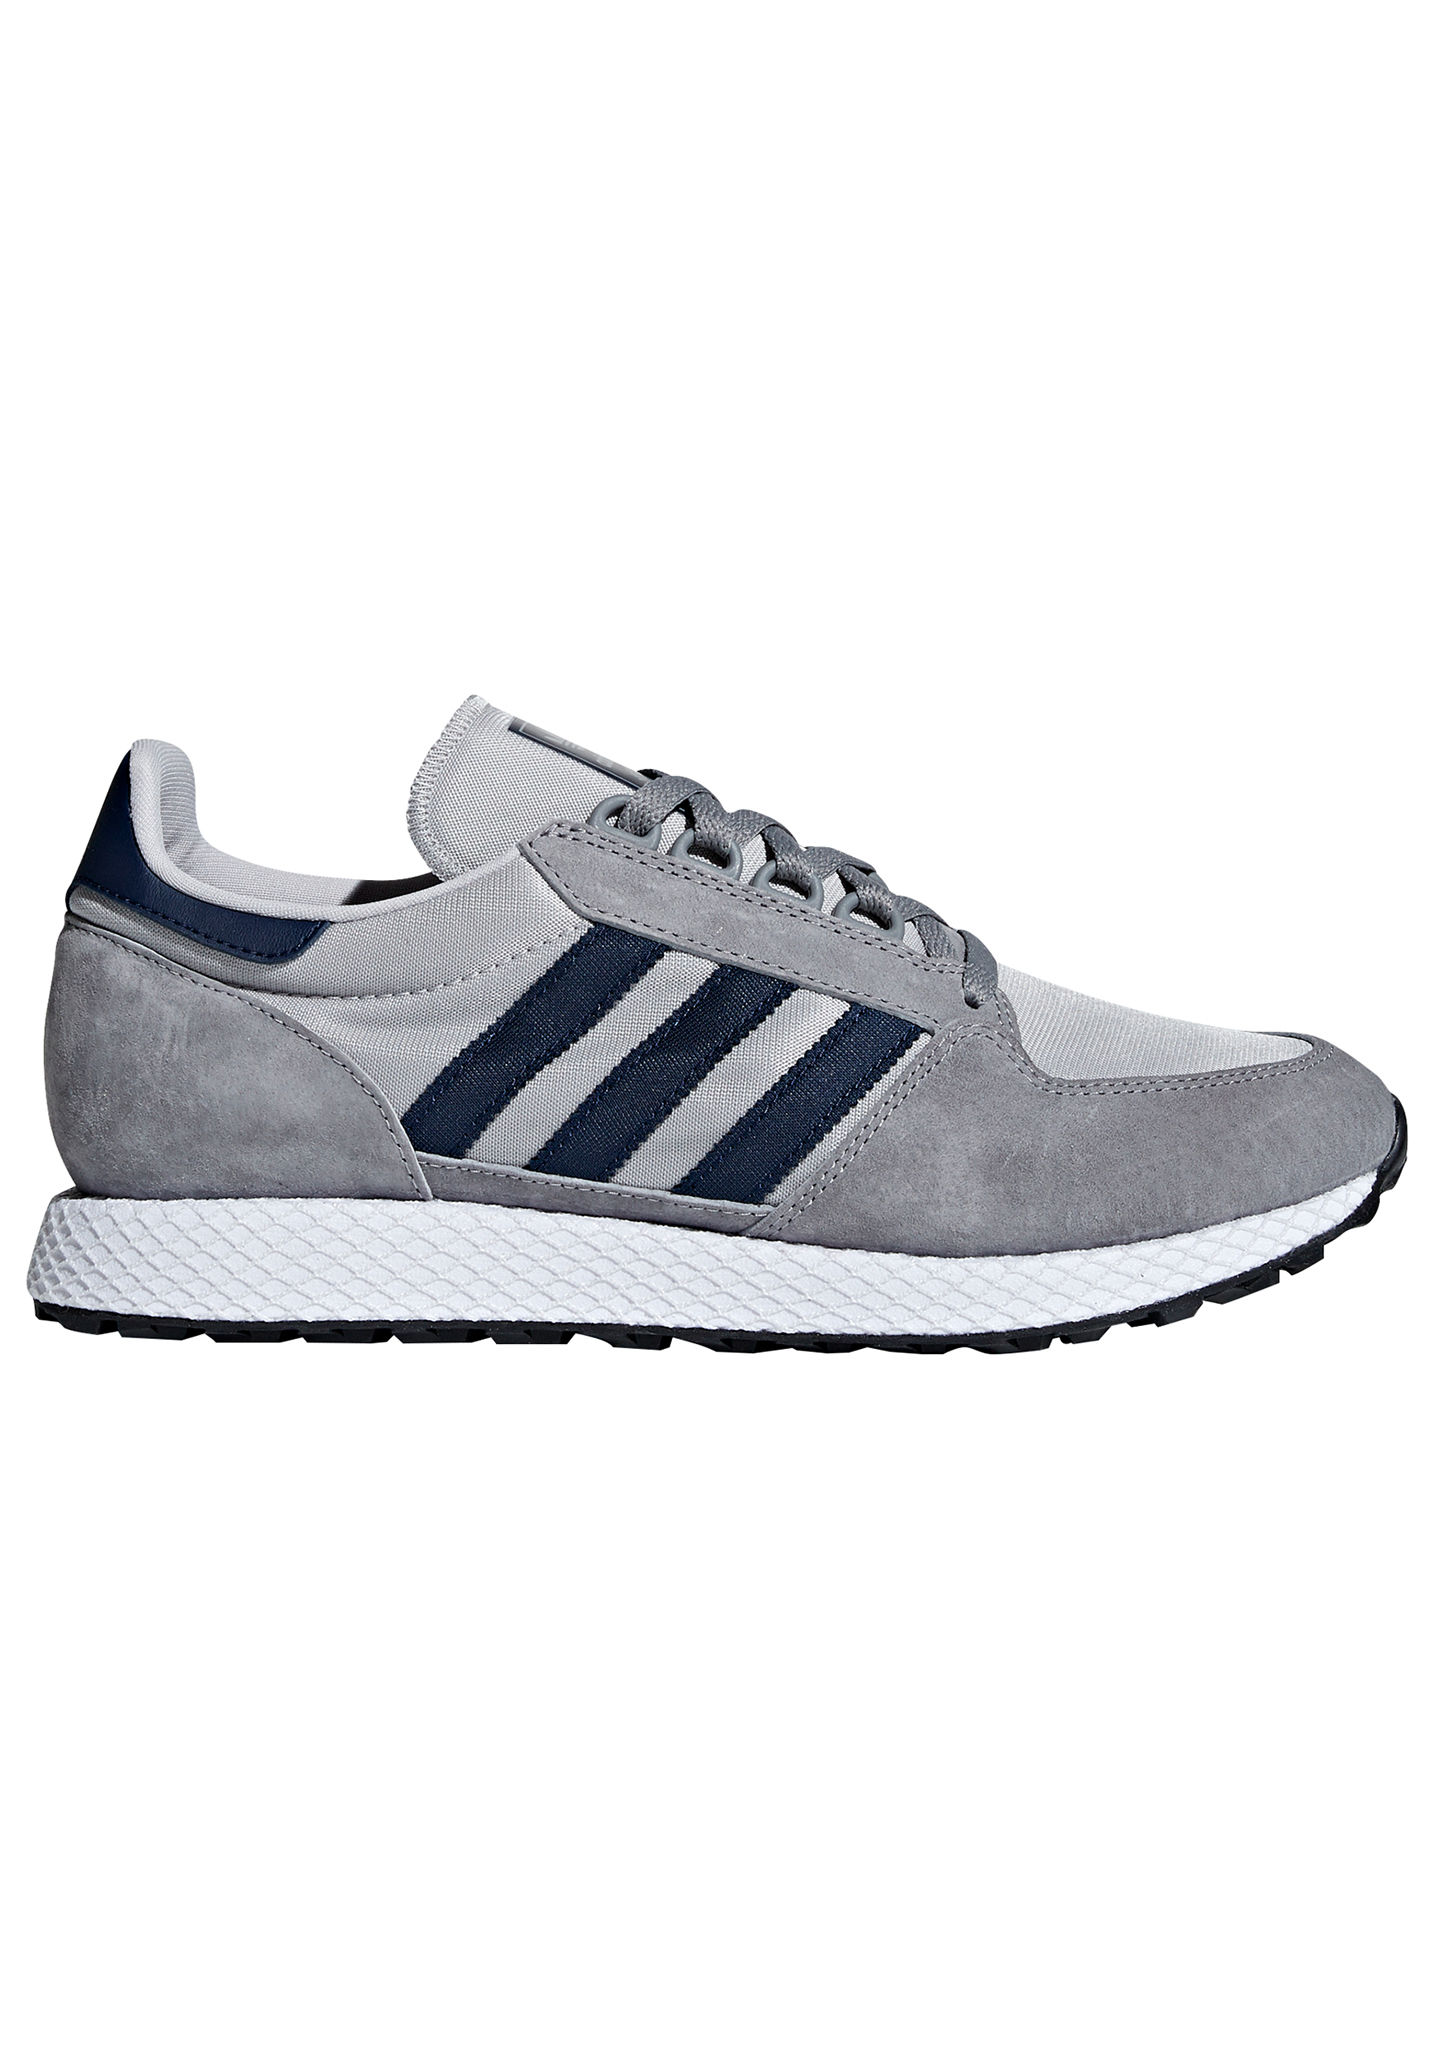 new style 612be baf98 ADIDAS ORIGINALS Forest Grove - Baskets pour Homme - Gris - Planet Sports